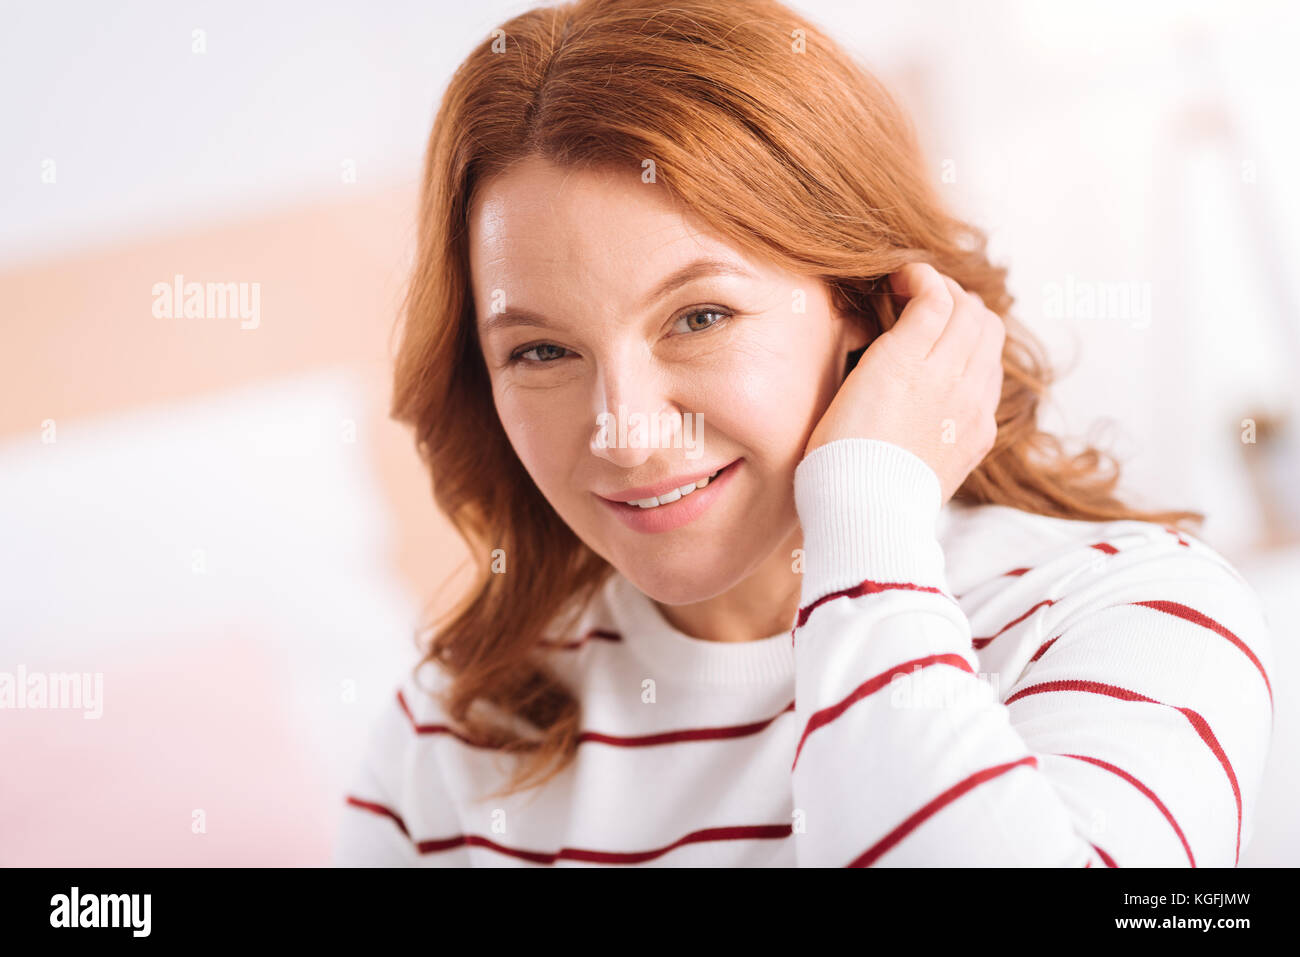 Nice content woman of middle age smiling - Stock Image